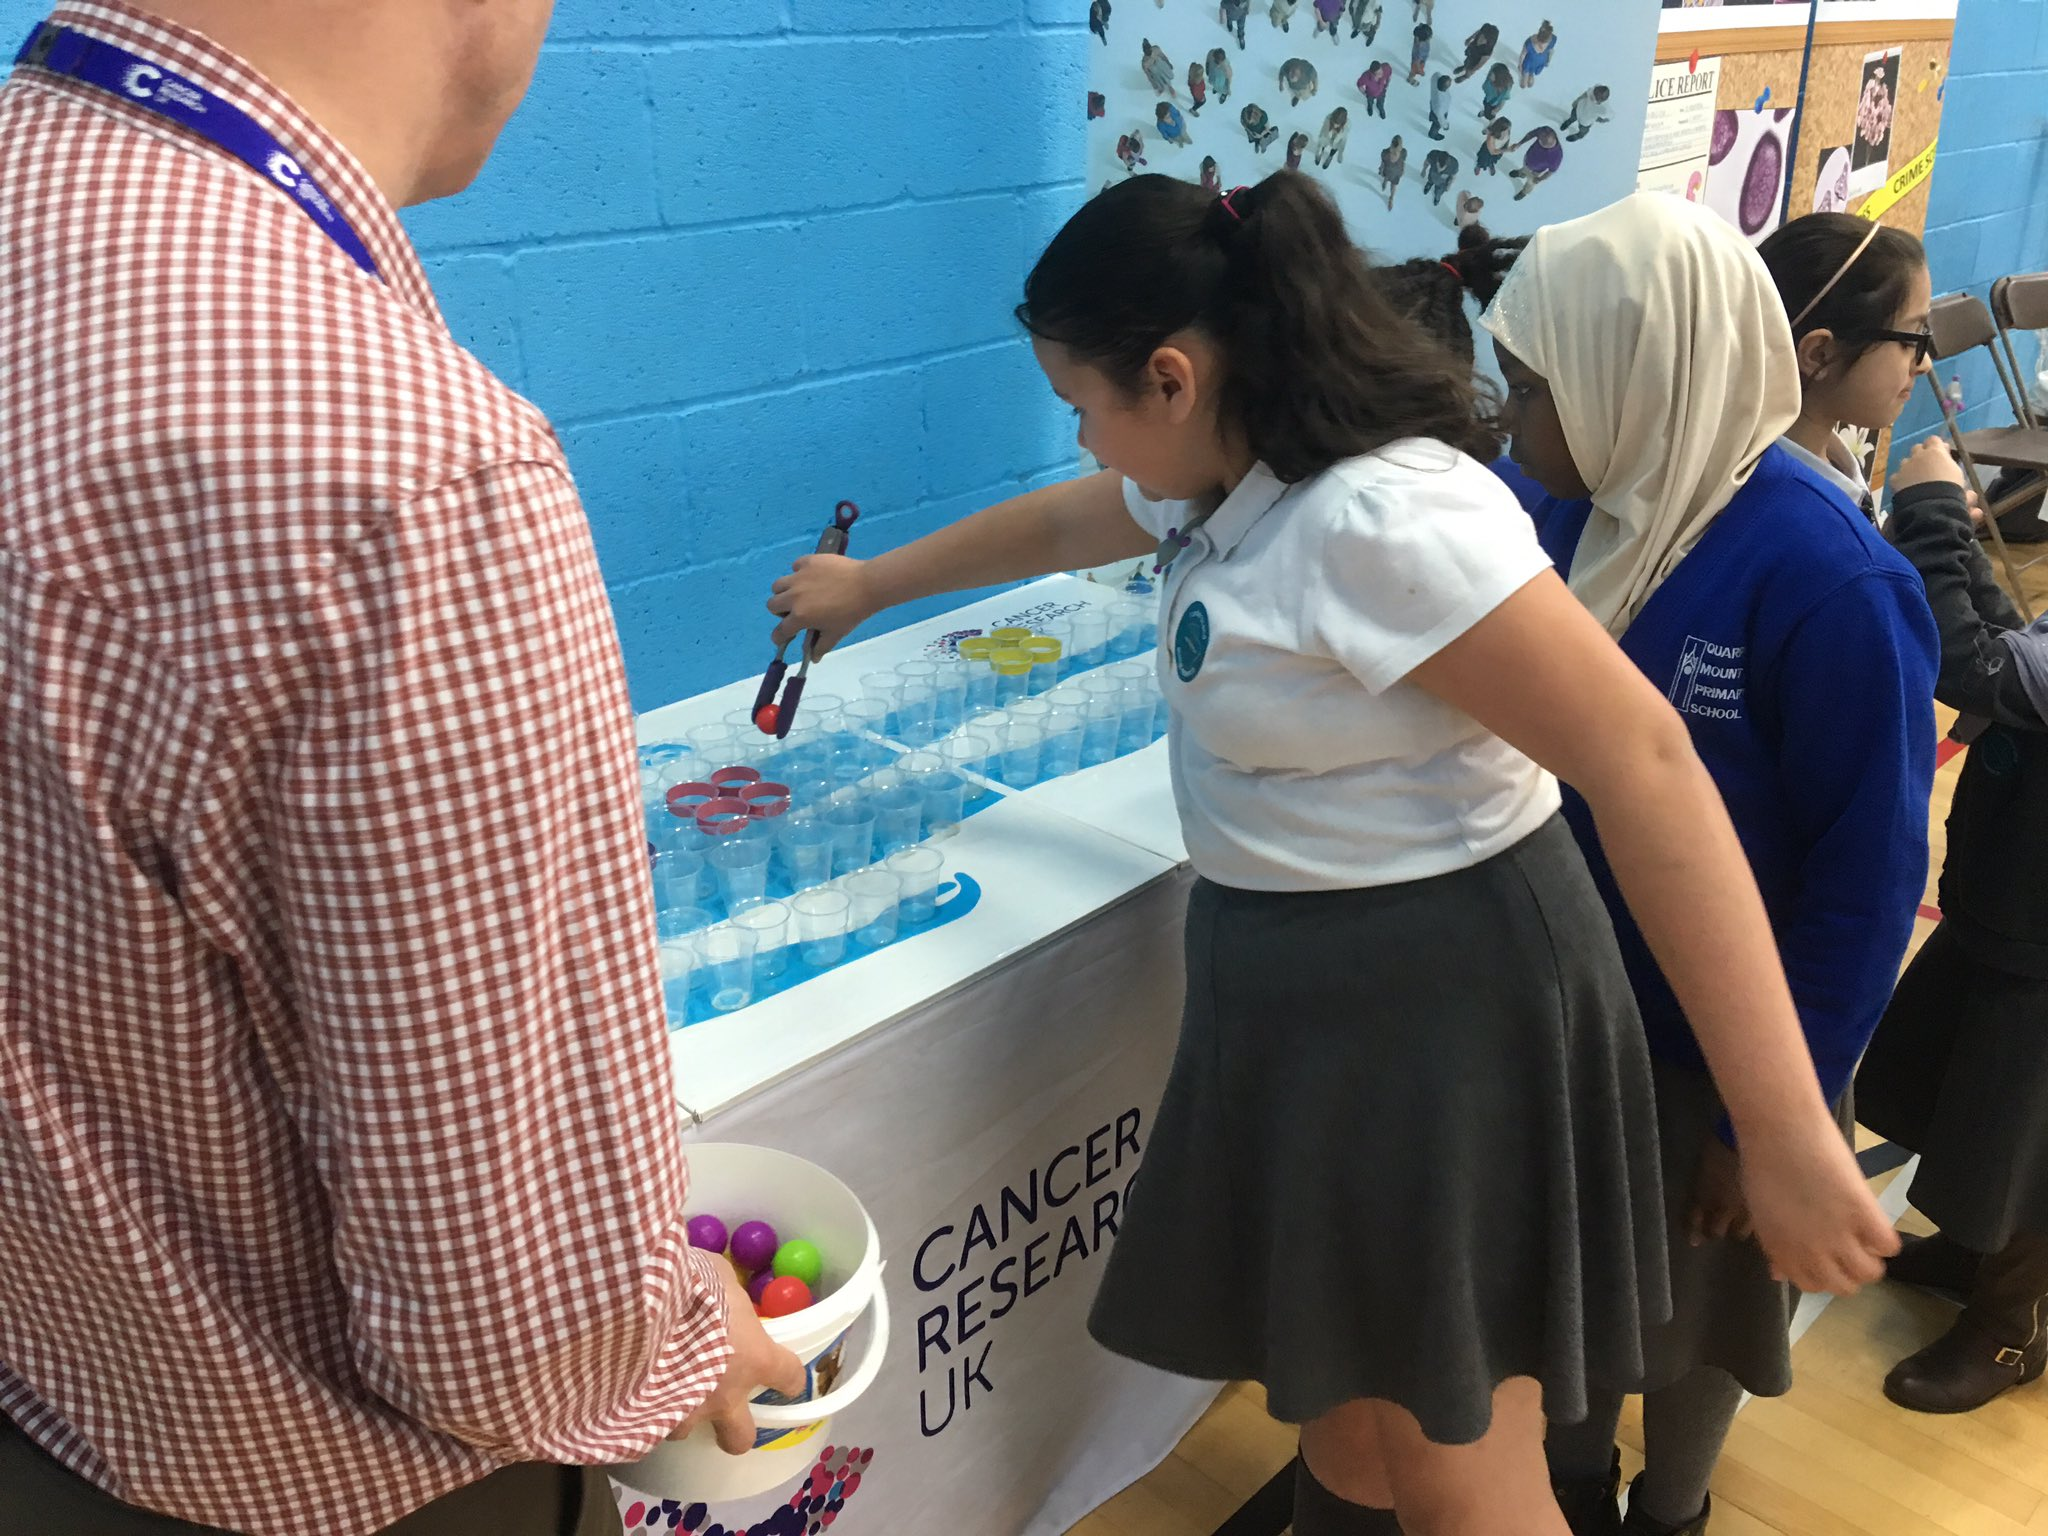 Young doctors treating our poorly patient with targeted therapies at the Discovery Zone this morning @STEMatLeeds #LFoS17 #CR-UK https://t.co/L4UxV8aDw0